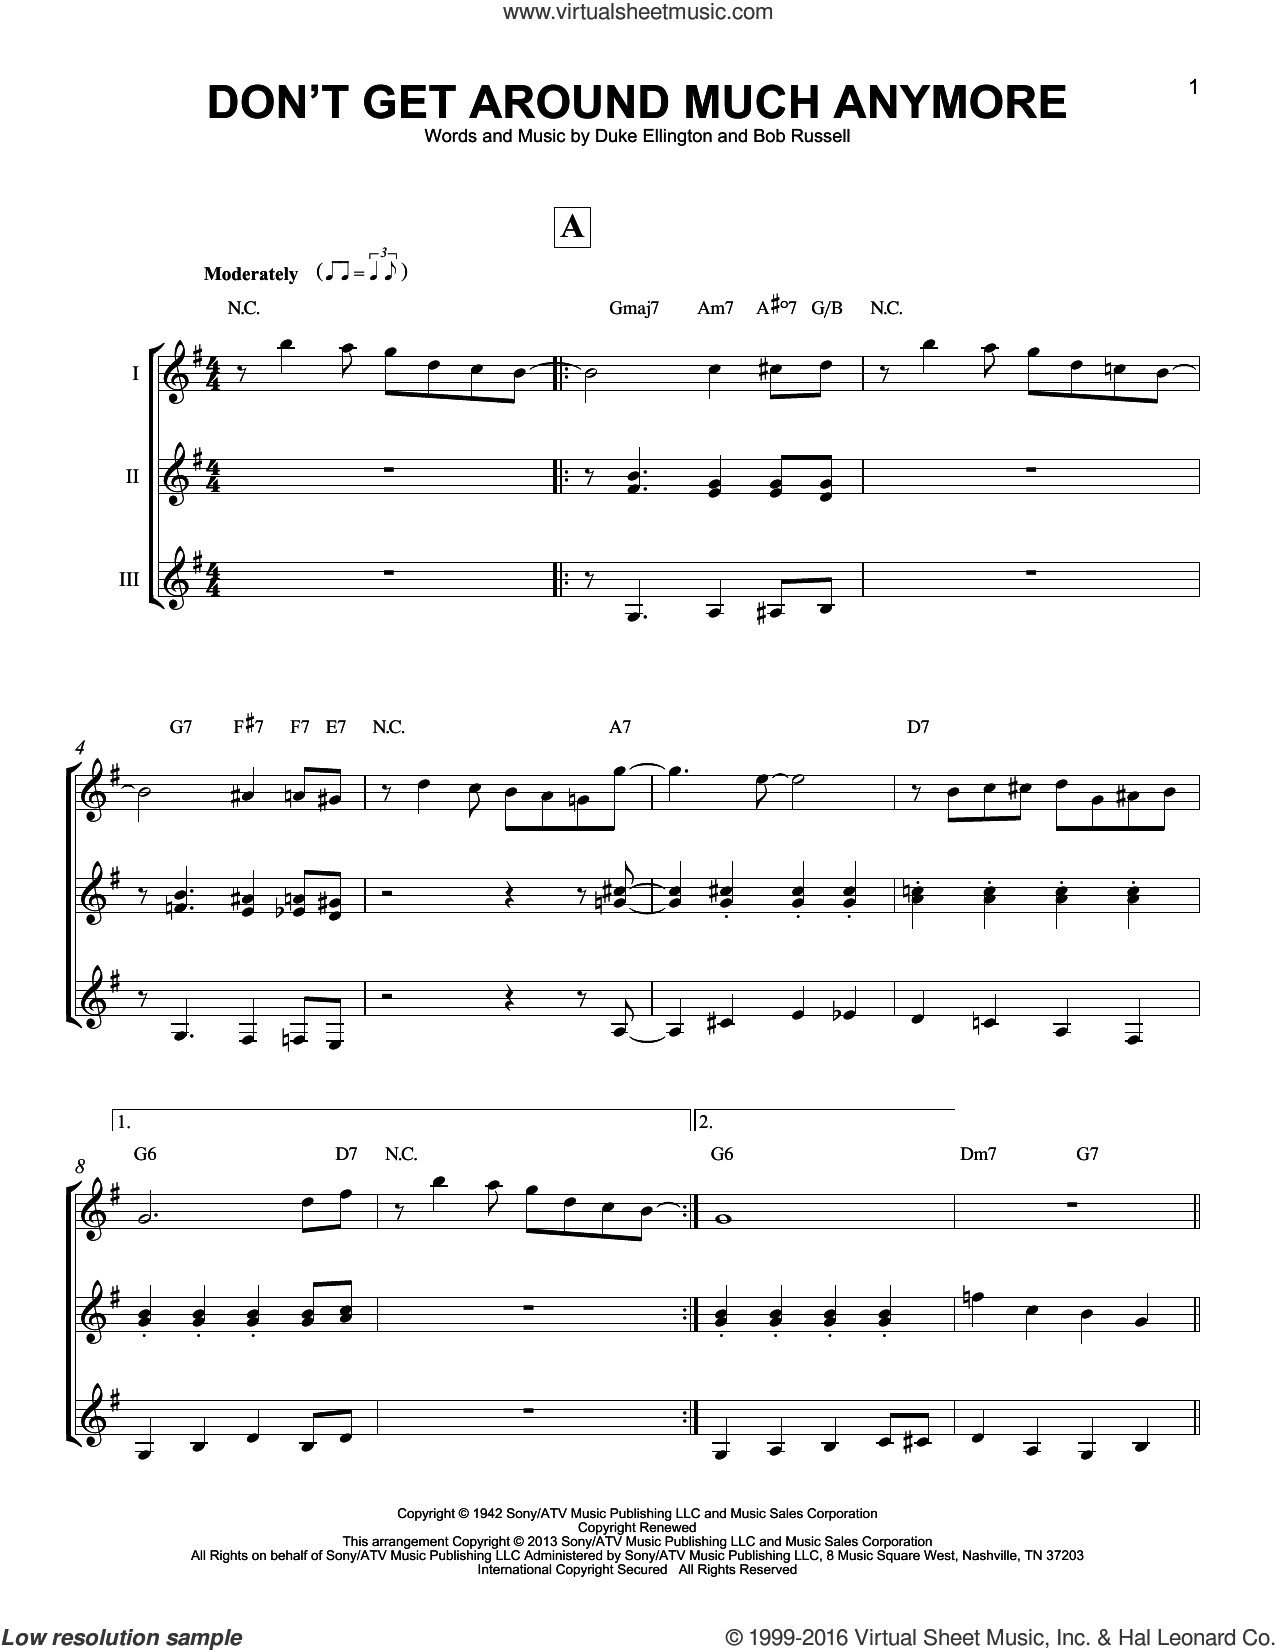 Don't Get Around Much Anymore sheet music for guitar ensemble by Duke Ellington and Bob Russell, intermediate skill level